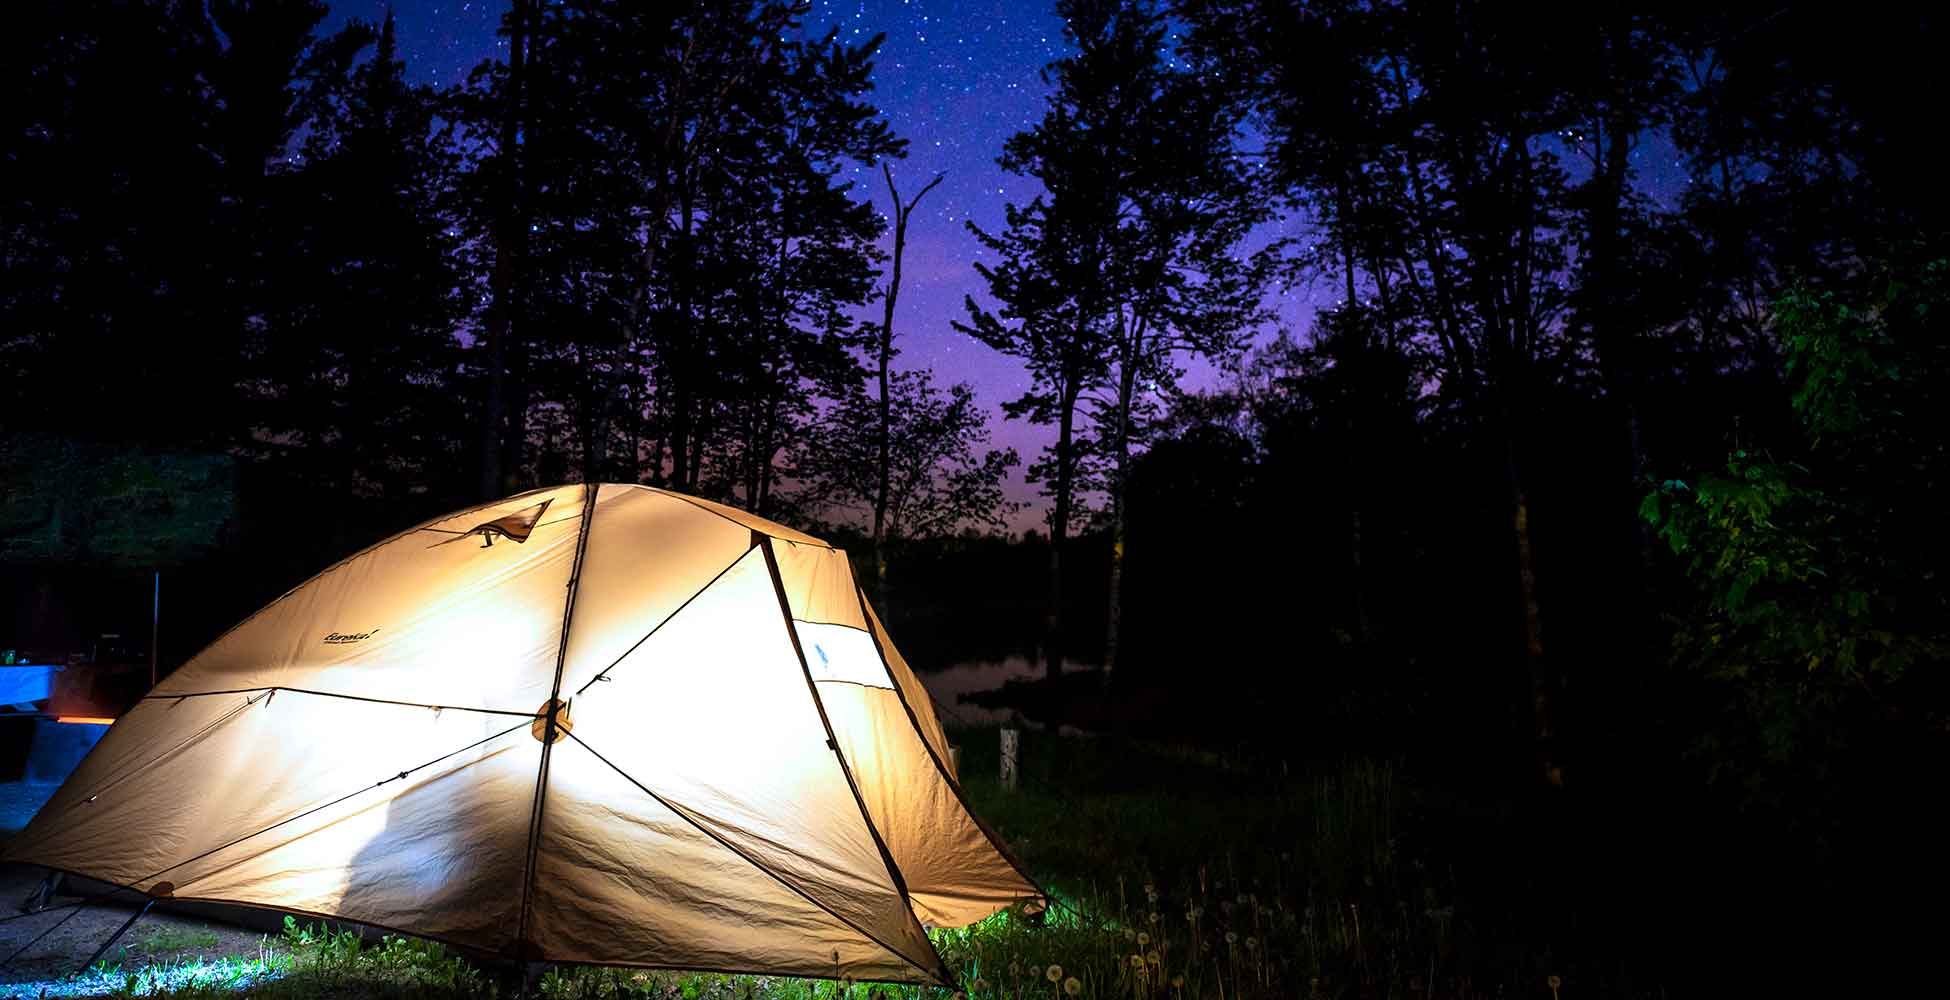 West Michigan camping at night